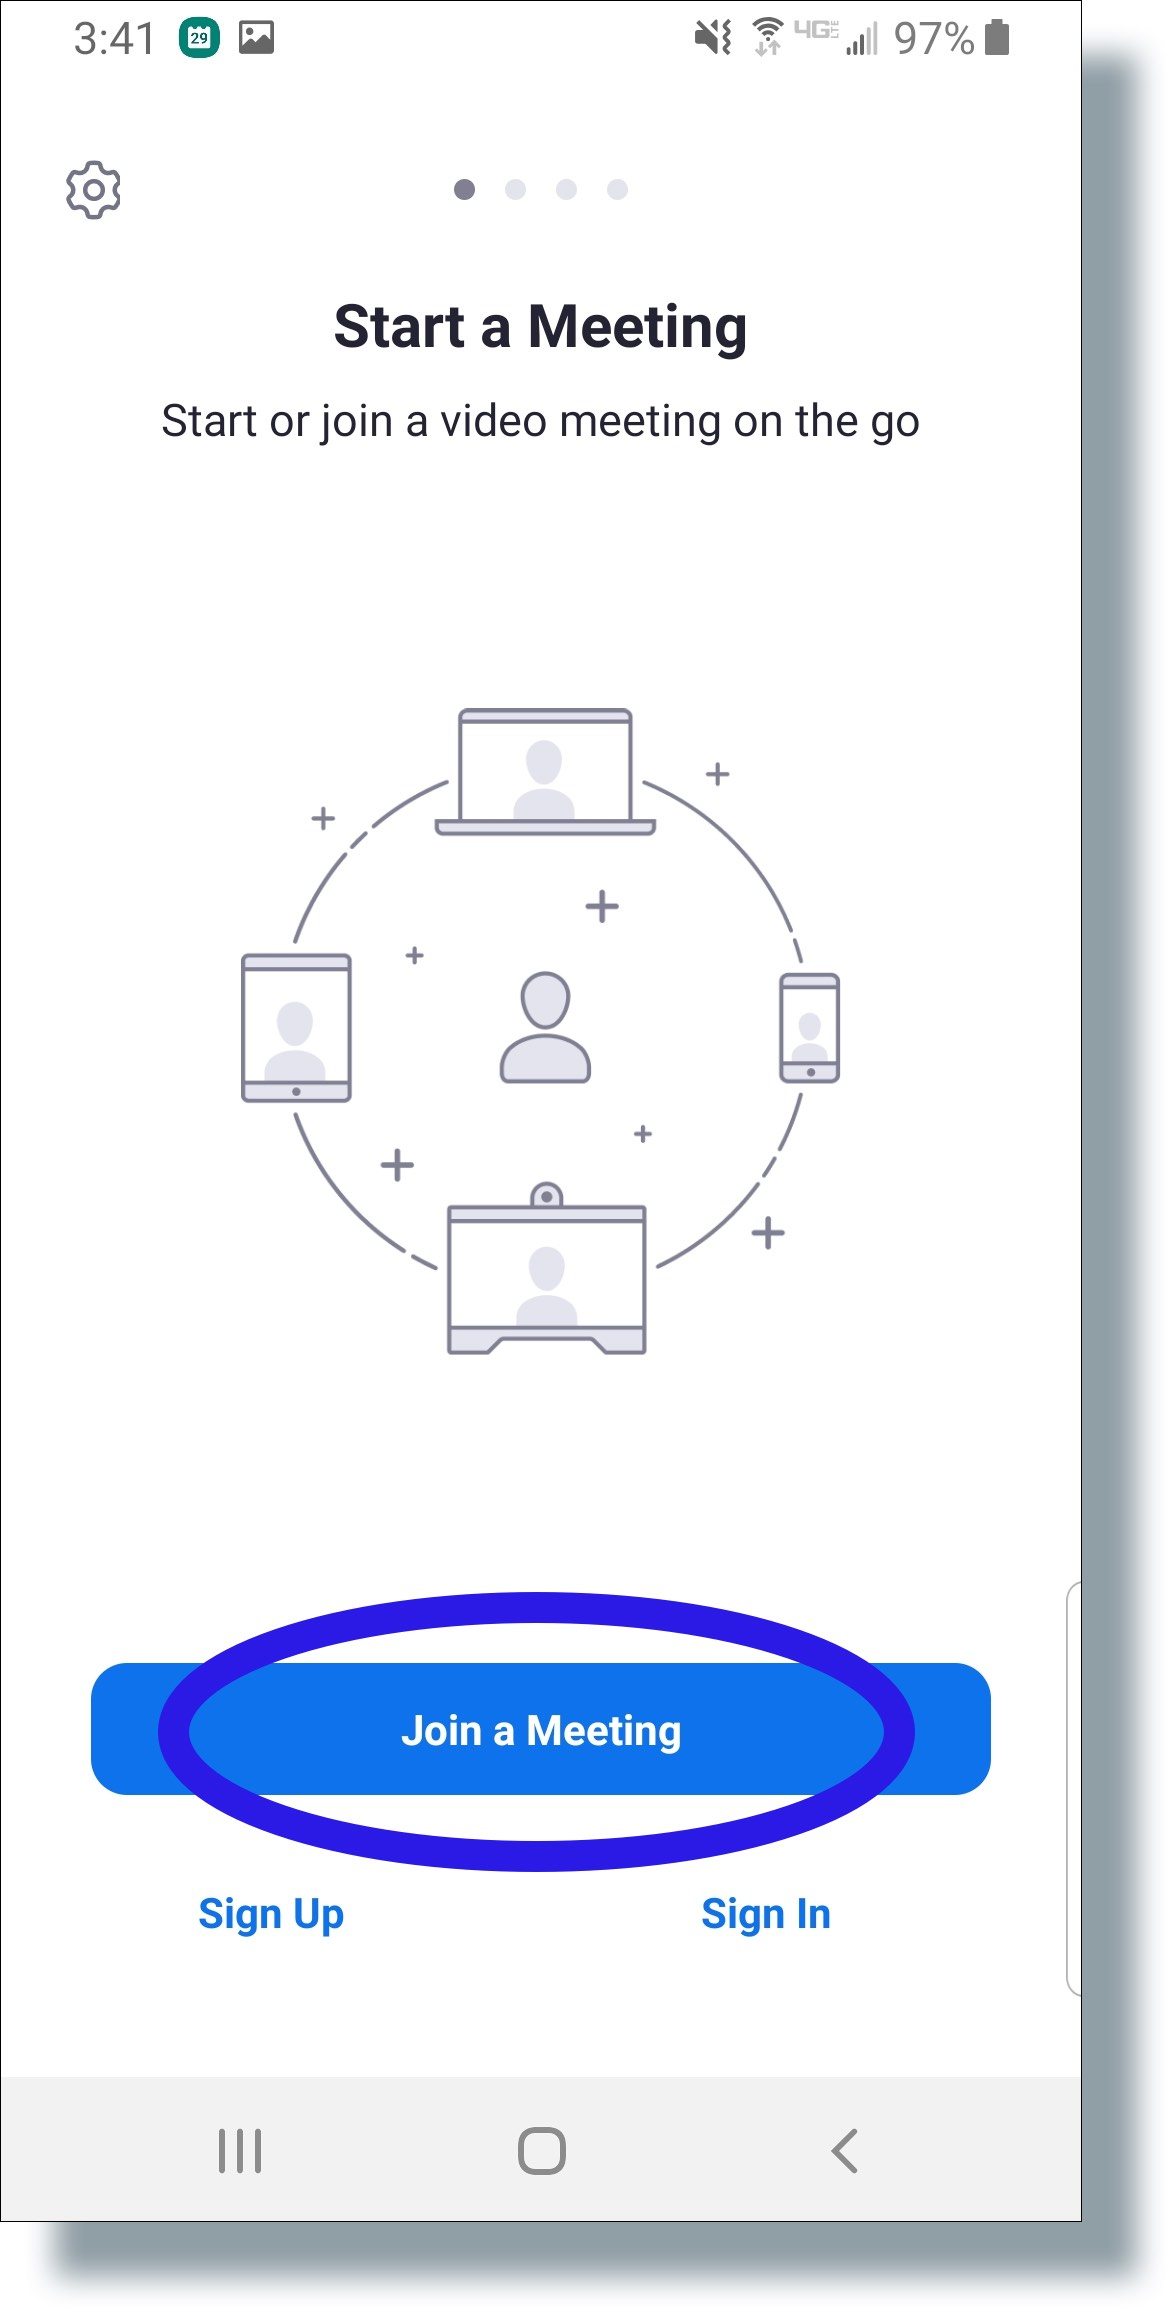 Tap 'Join a Meeting'